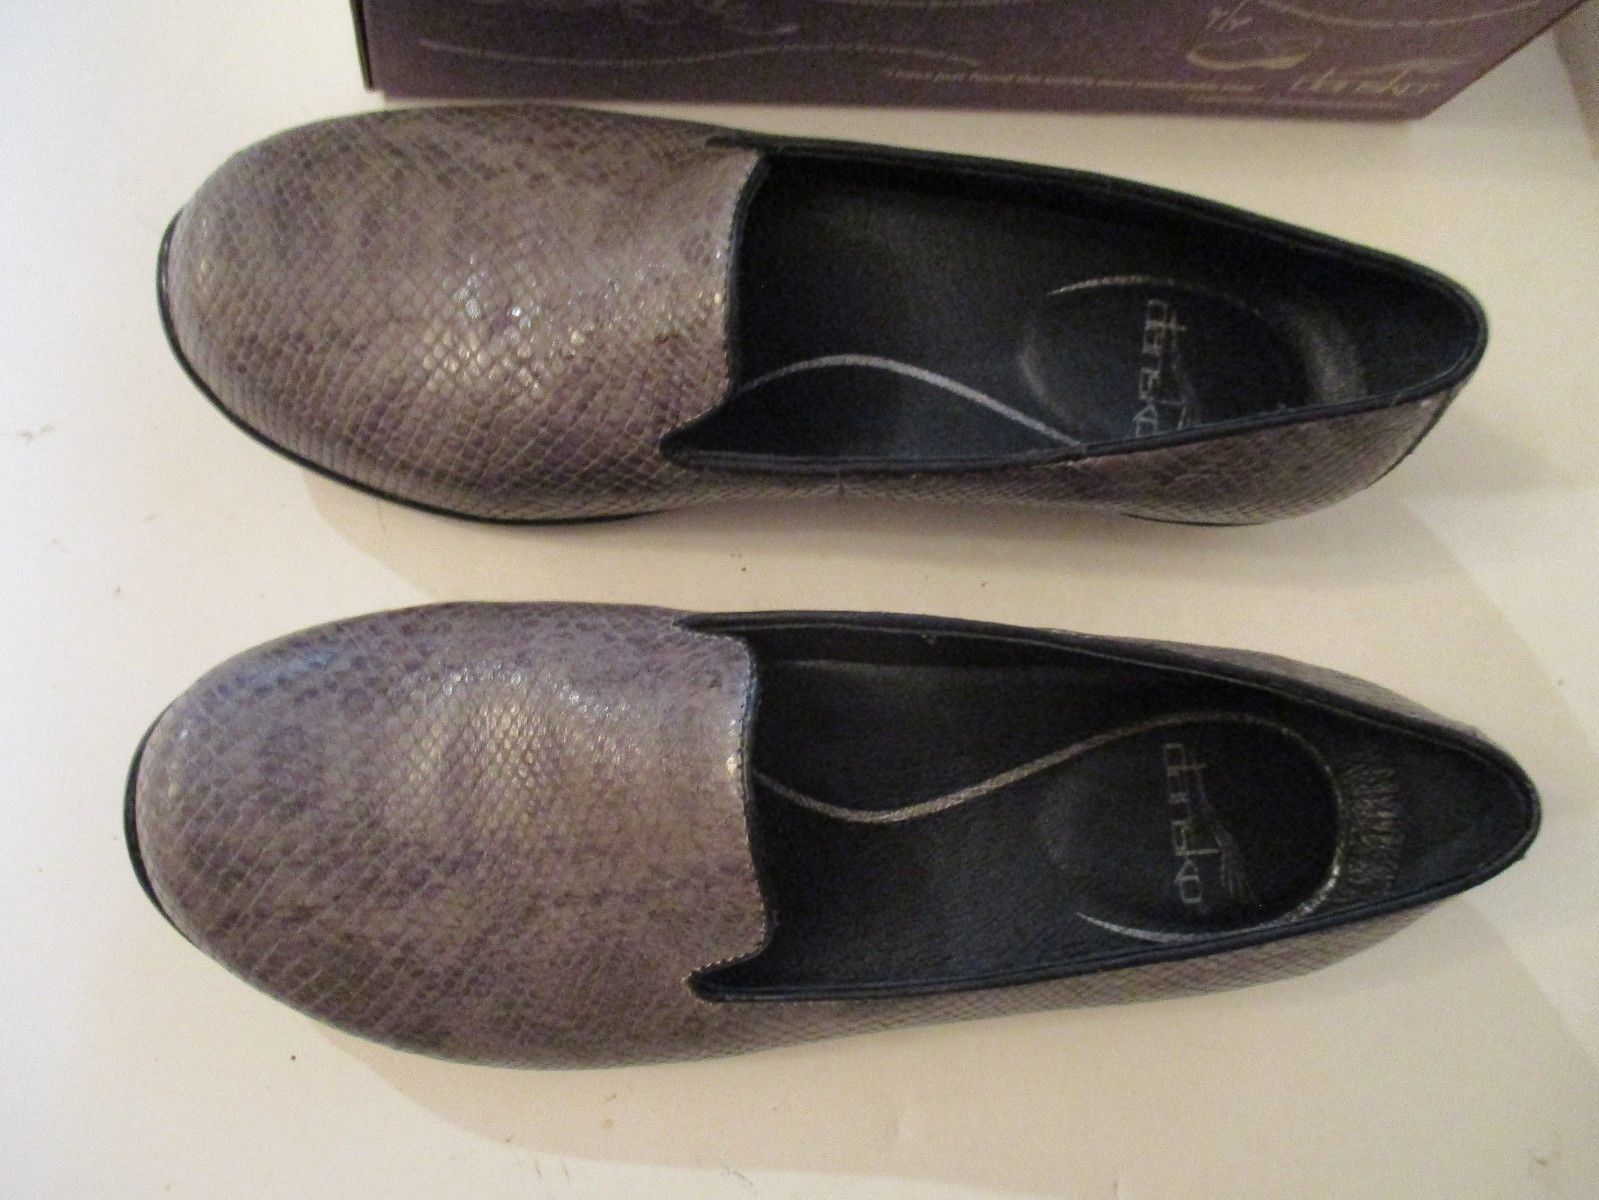 e0c7d8cc9f3 Dansko Size 7 Womens Olivia Leather Loafers and 23 similar items. 57